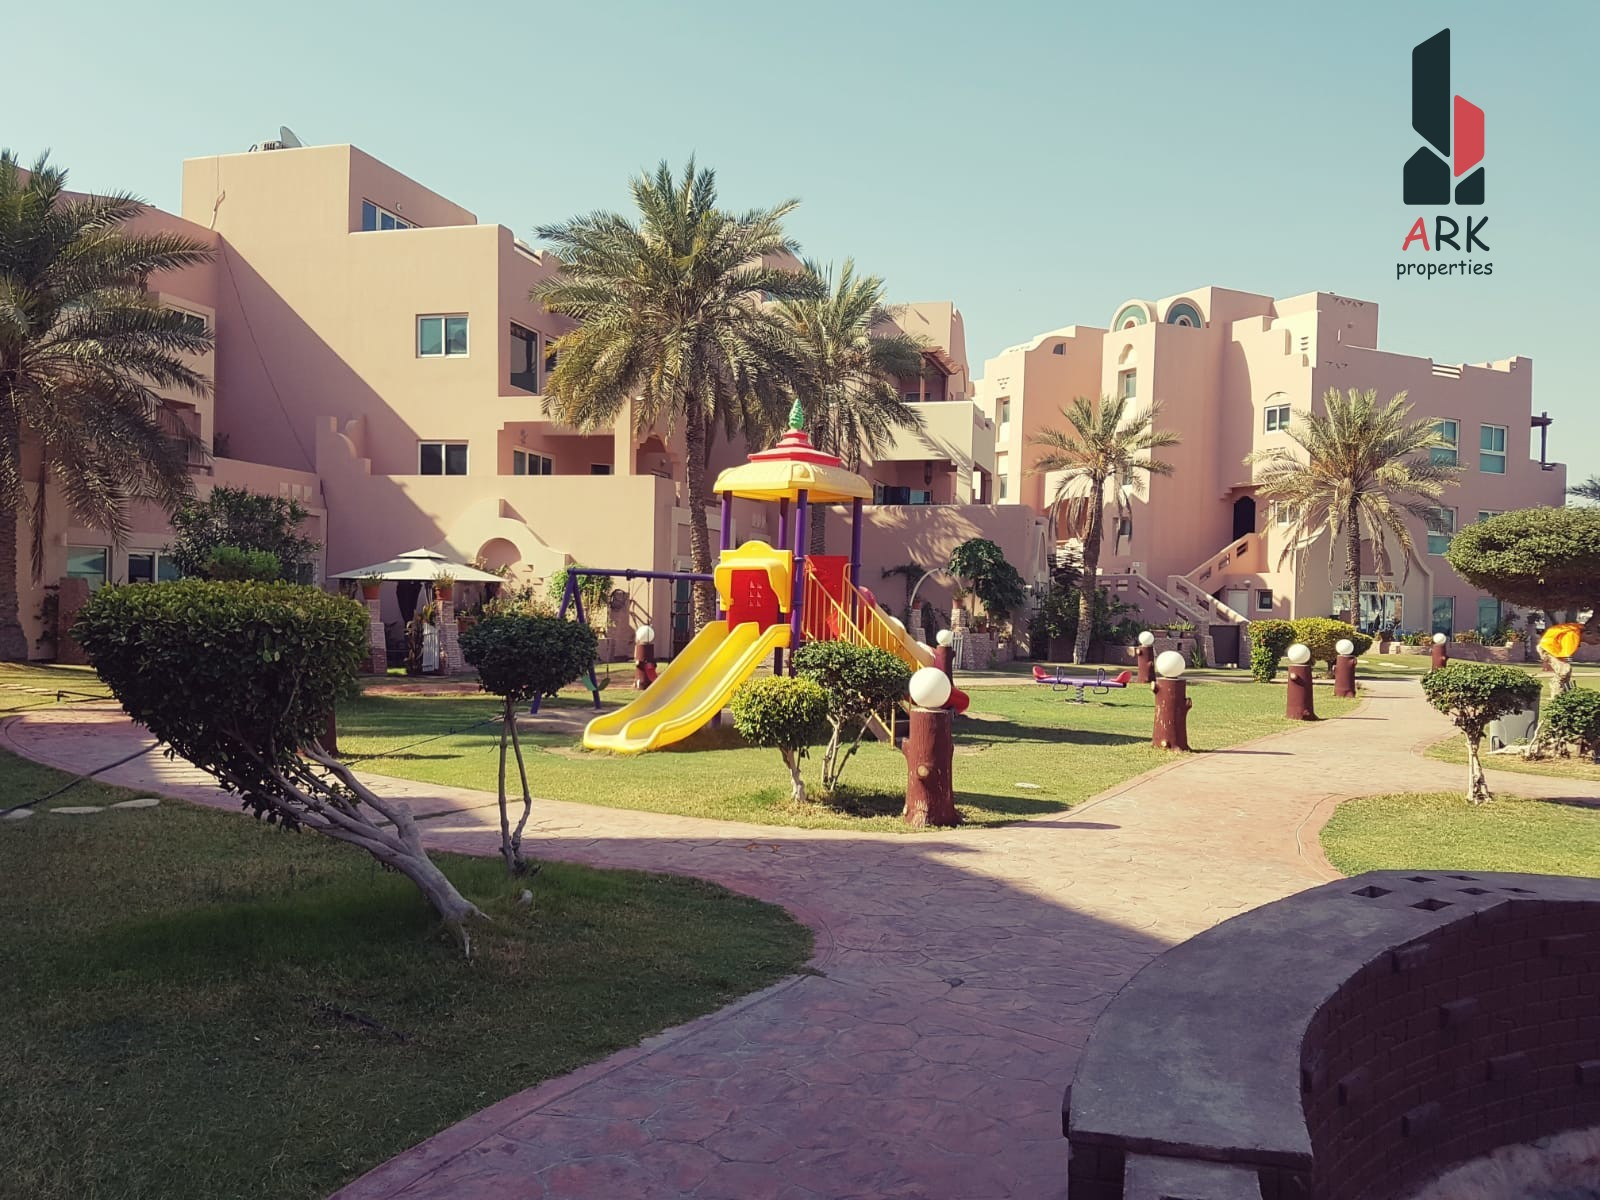 Sea view apartment,largepool, play area,party hall